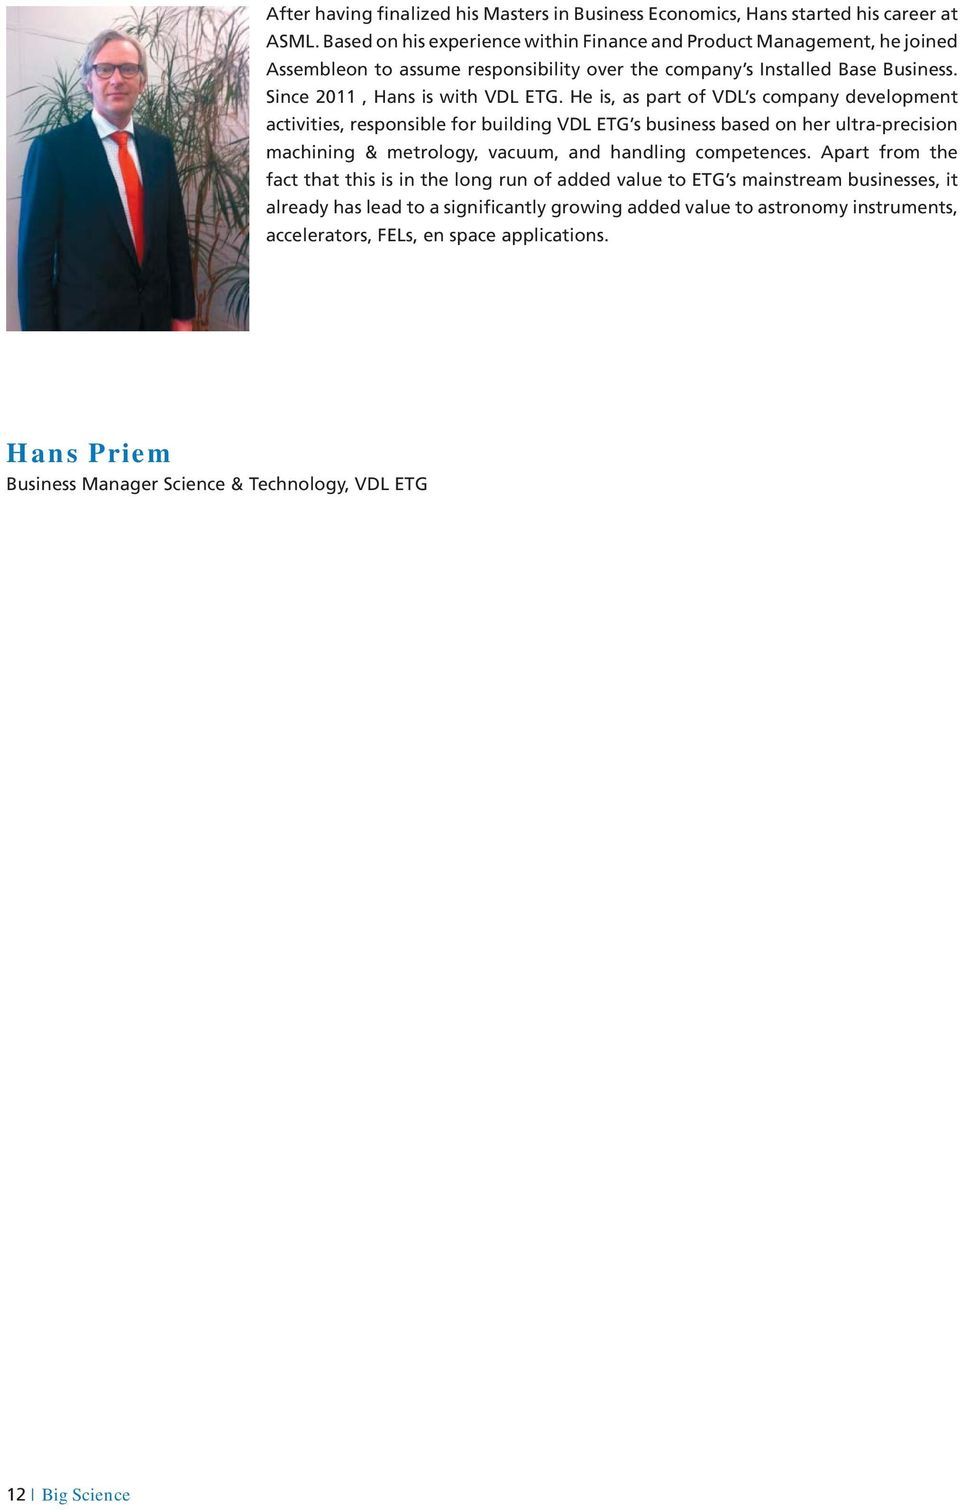 He is, as part of VDL s company development activities, responsible for building VDL ETG s business based on her ultra-precision machining & metrology, vacuum, and handling competences.